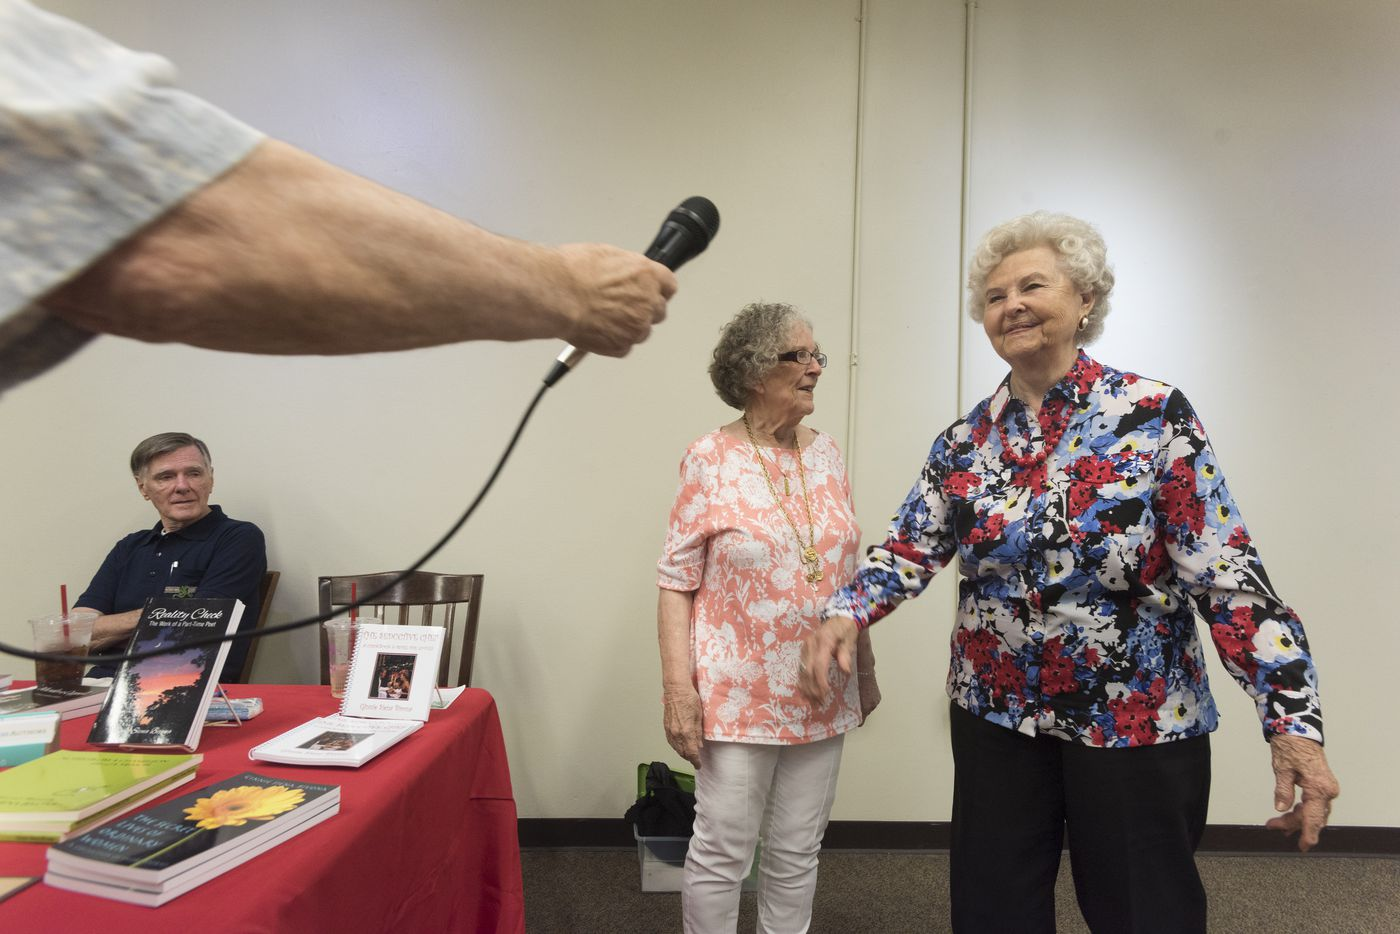 Larry Upshaw hands Barbara Mott, 92, a microphone so she can talk about how she became an author at 82 during a book signing event at Half Price Books on Sunday, June 26, 2016.  Upshot and Ginnie Siena Bivona, center, have launched Ageless Authors, a publishing project for people 65 and older.   (Rex C. Curry/Special Contributor)